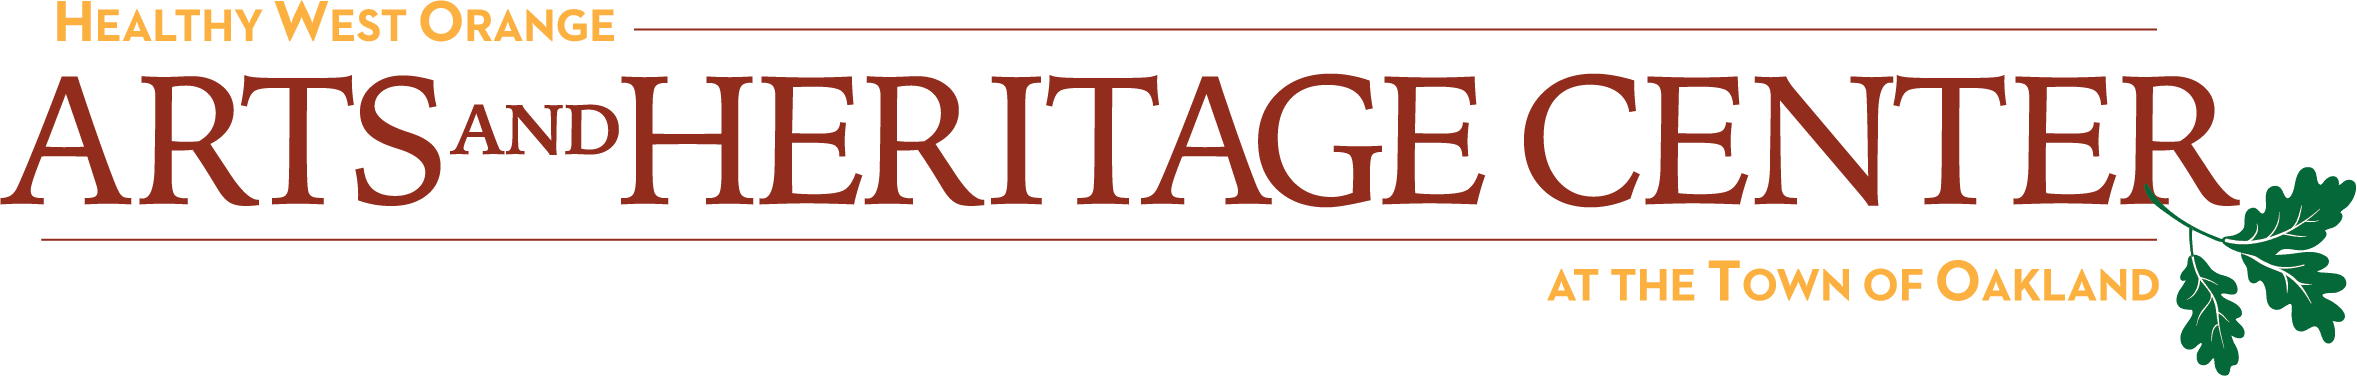 HWO Arts and Heritage Center Logo horizontal